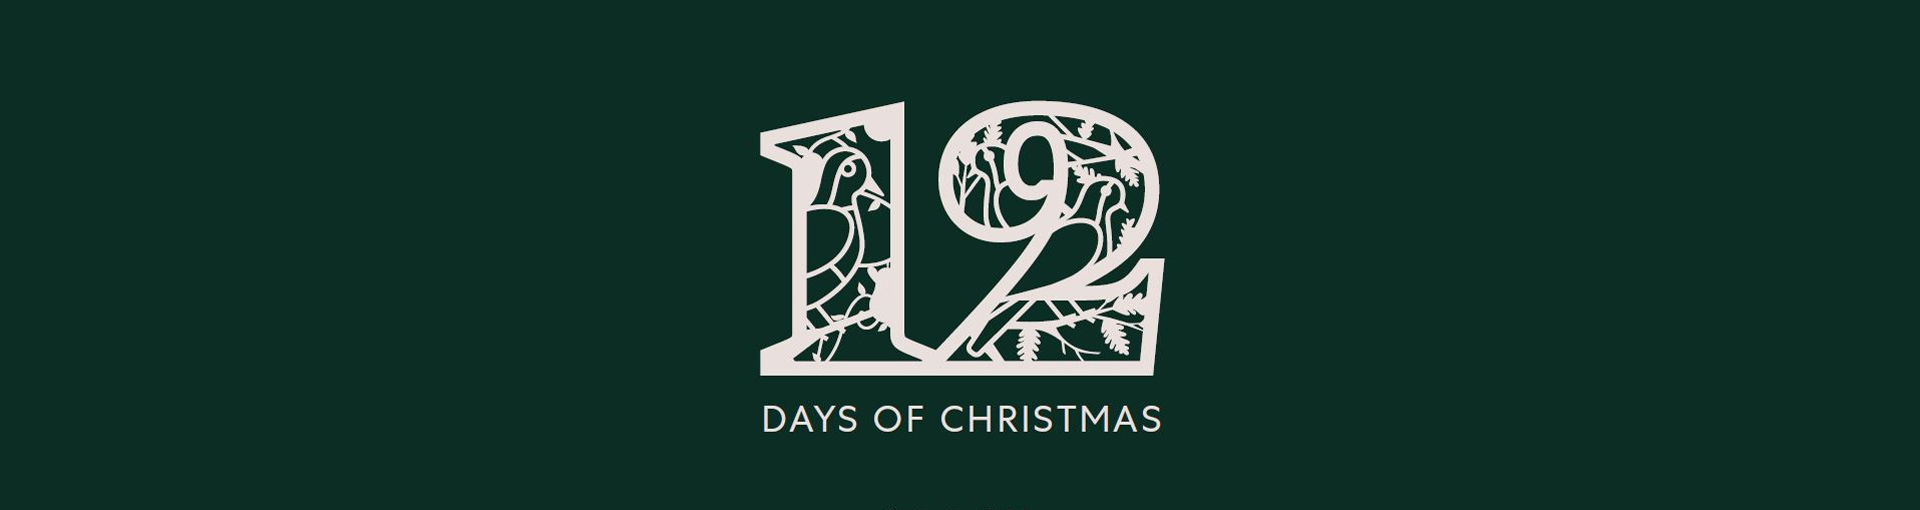 12 Days of Christmas, Spinningfields